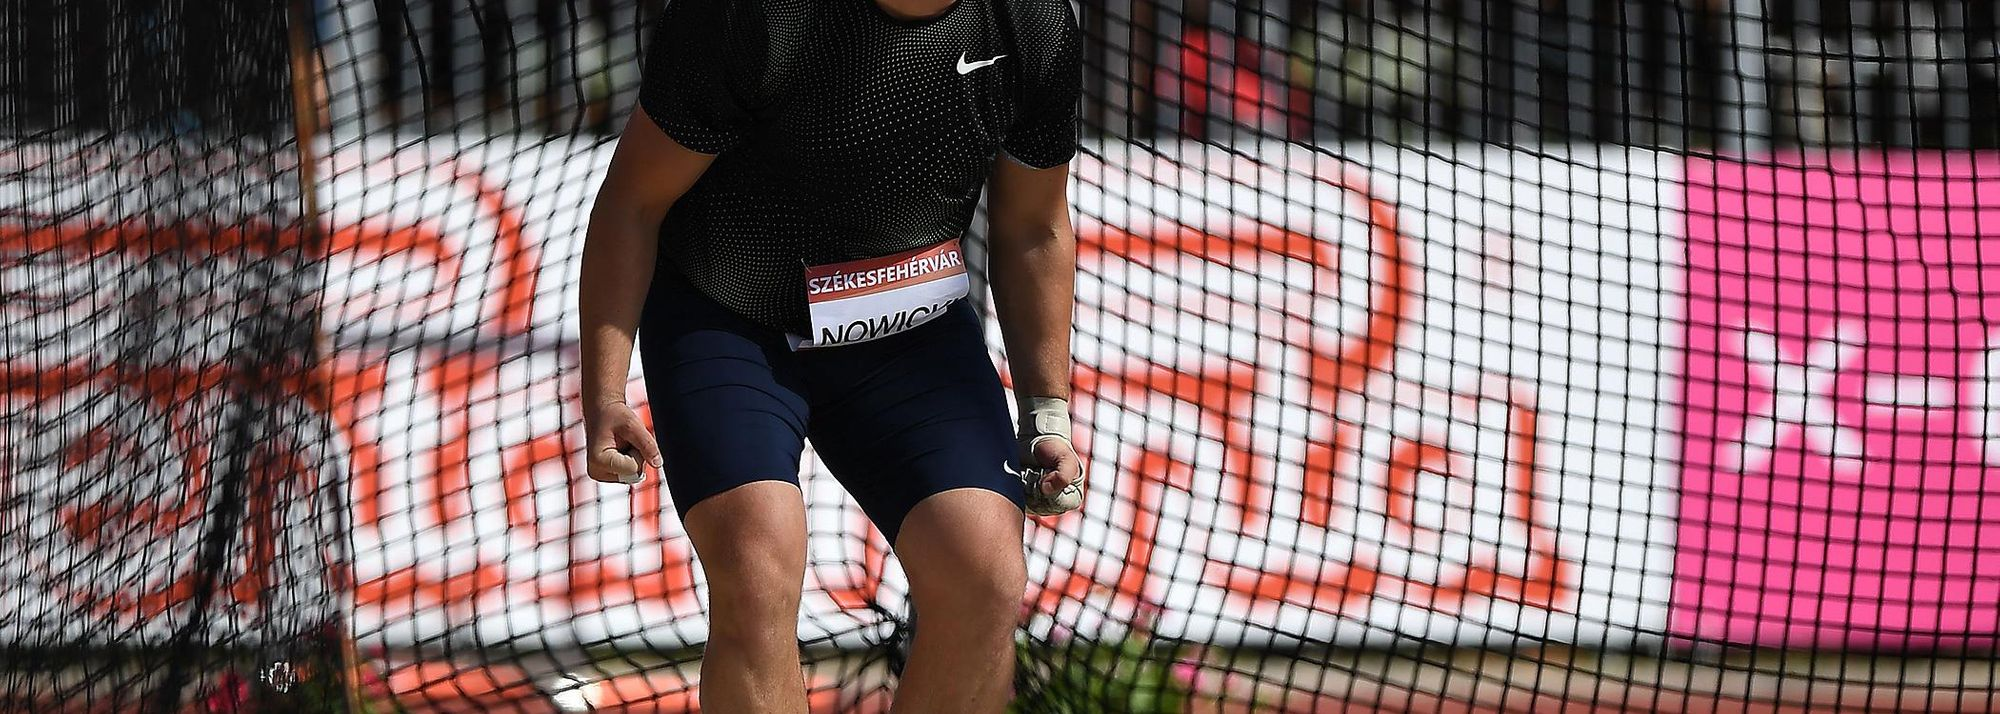 Making their first IAAF Hammer Throw Challenge appearance of 2019, Polish duo Wojceich Nowicki and Pawel Fajdek produced the highlight of the inaugural Irena Szewinska Memorial in Bydgoszcz on Wednesday (12).